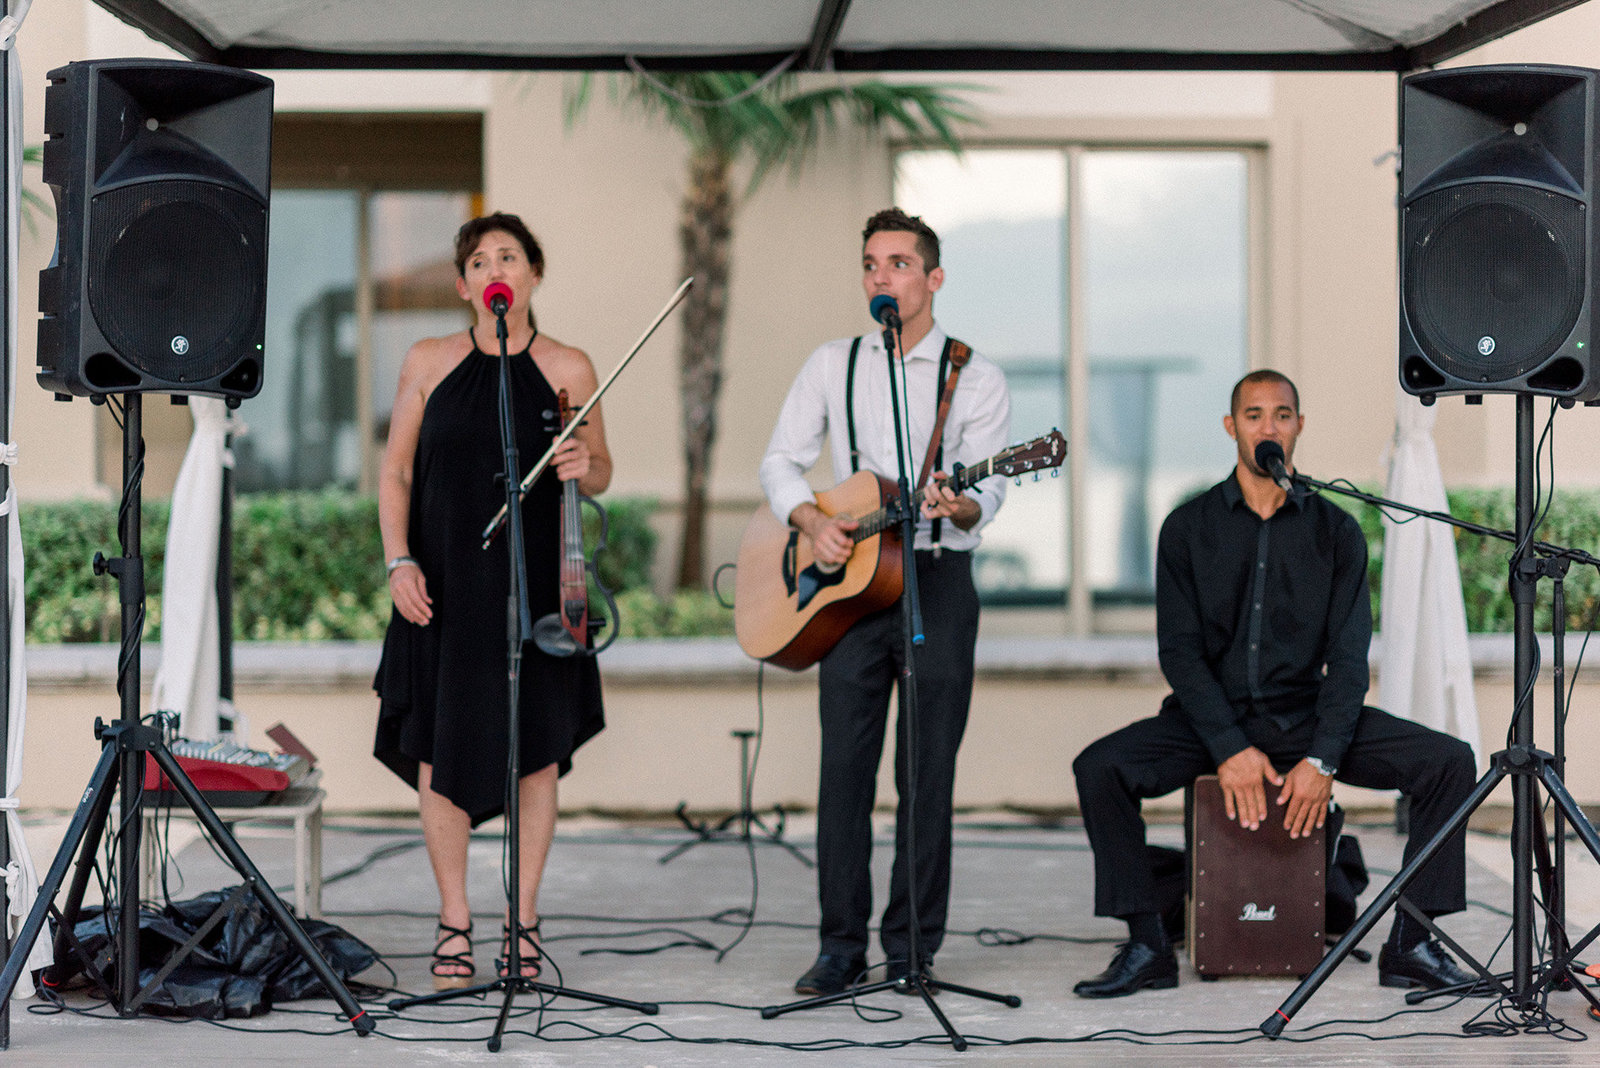 20180512-Pura-Soul-Photo-Ritz-Grand-Cayman-Wedding-131